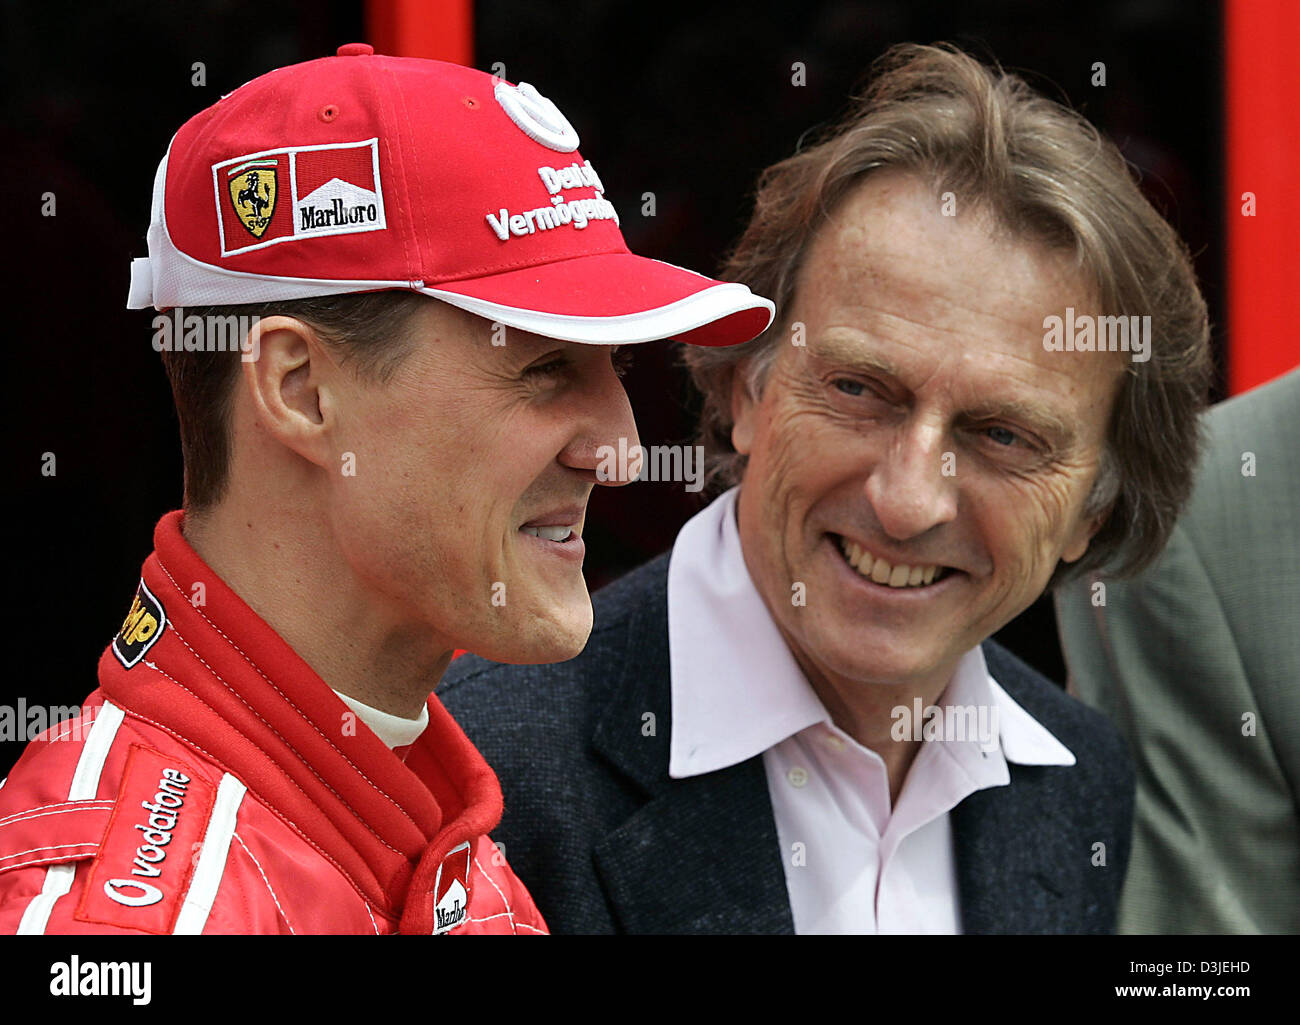 dpa) - German formula one champion Michael Schumacher (Ferrari ...